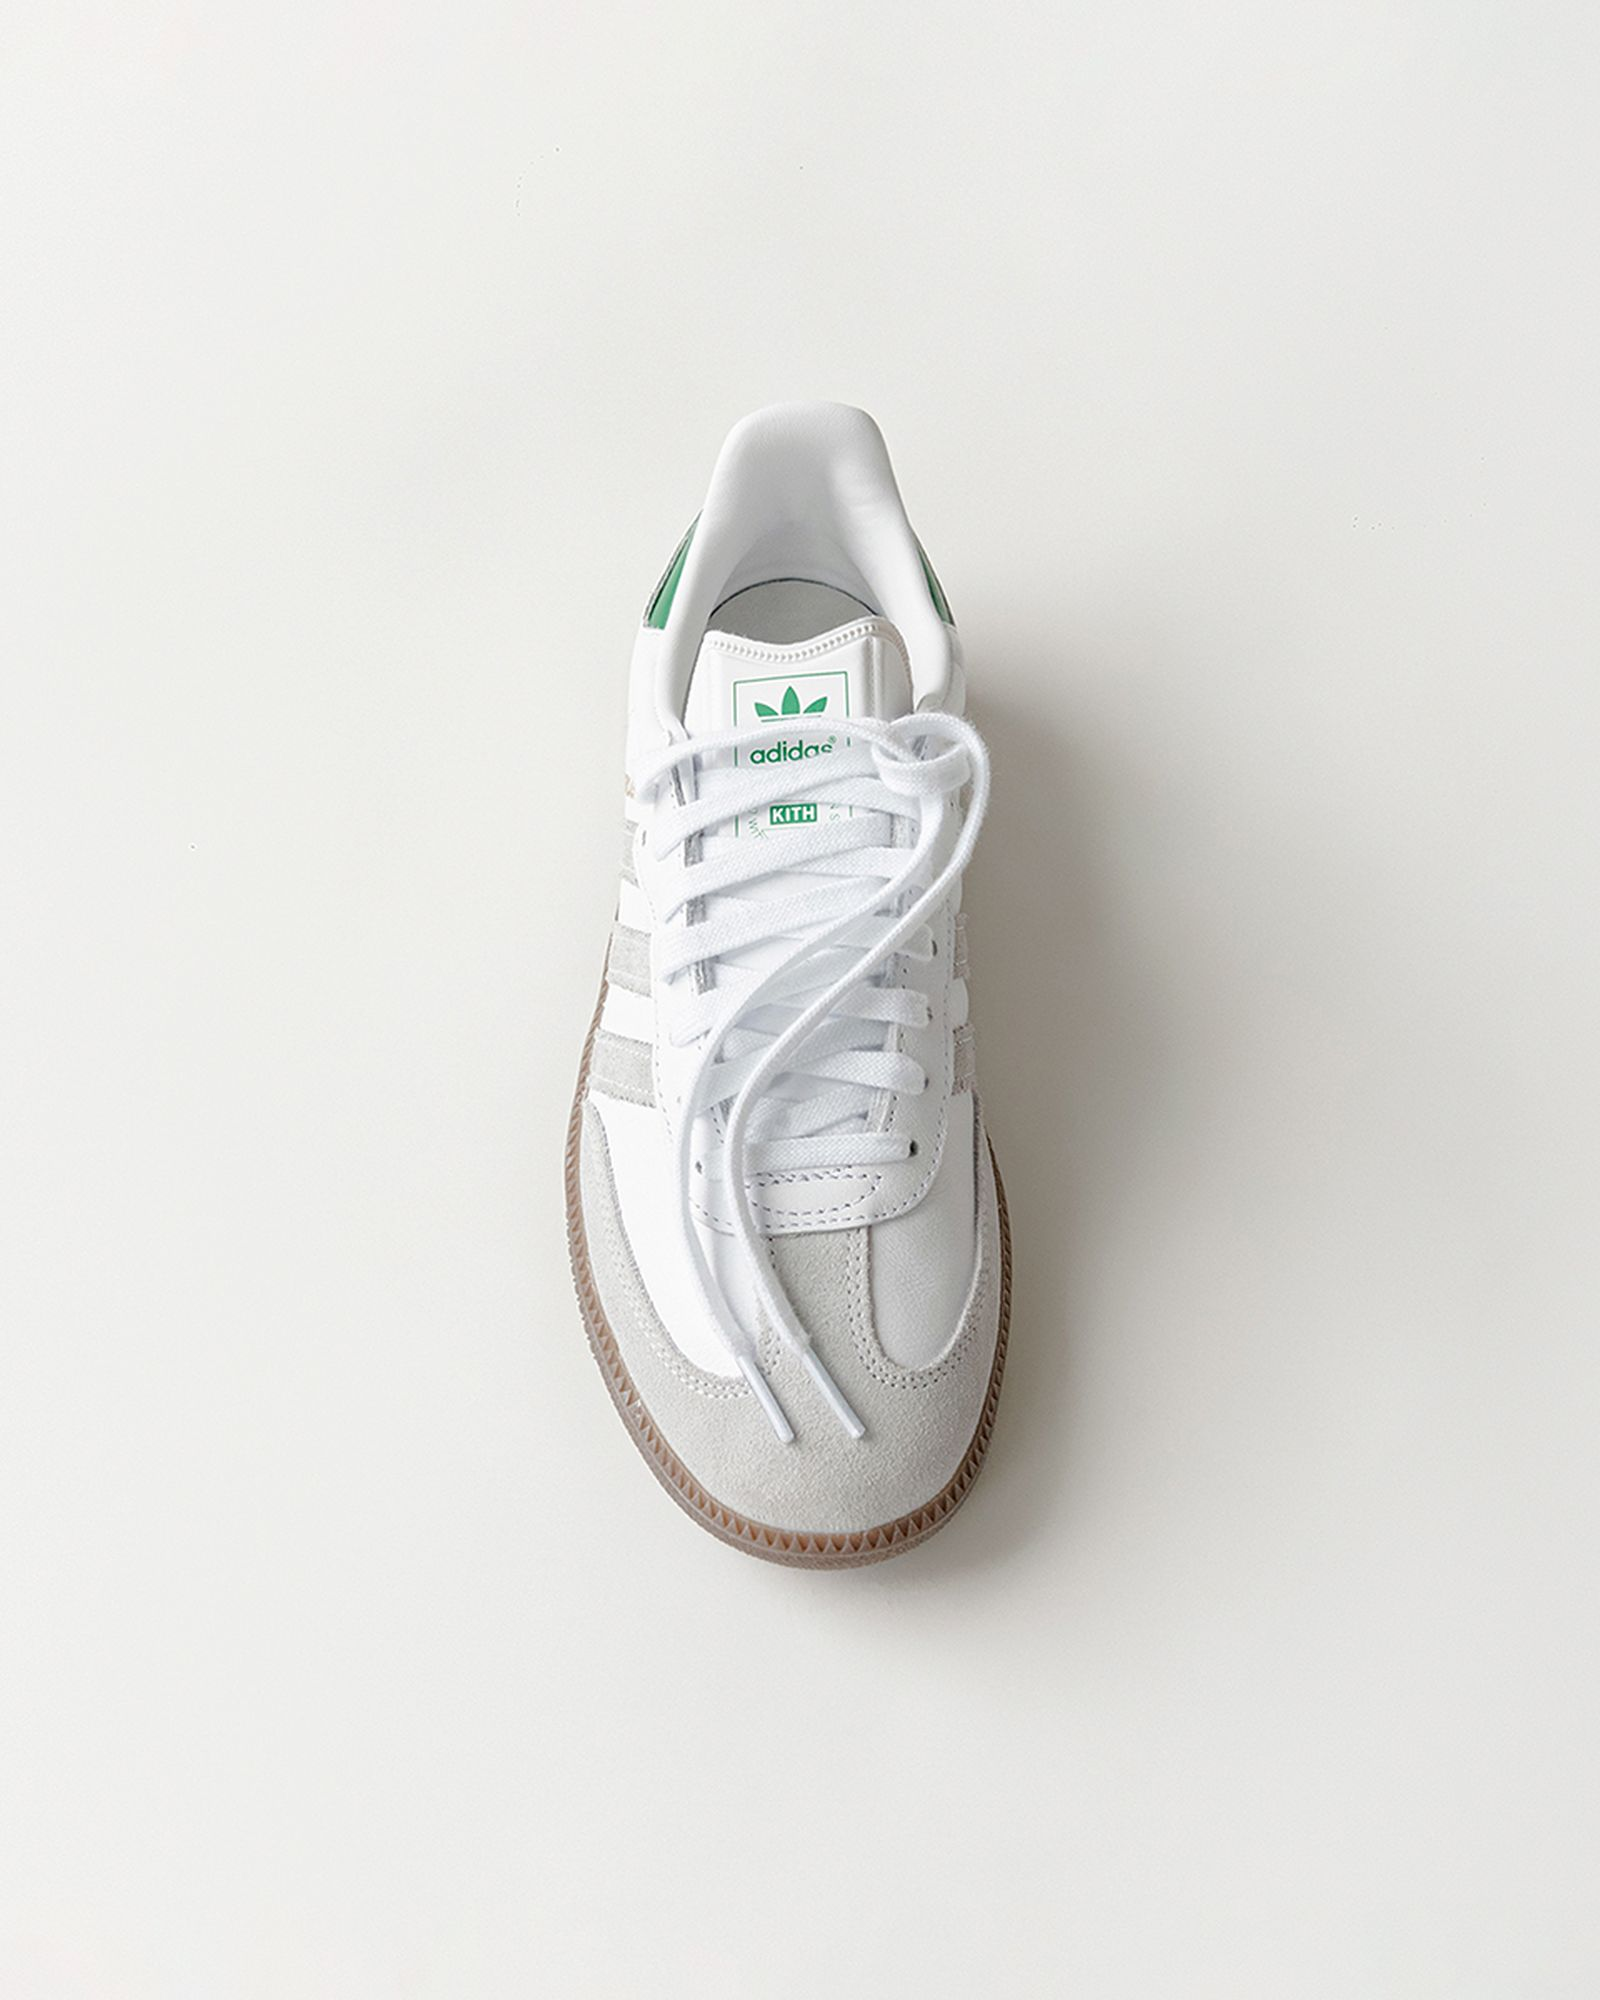 kith-adidas-summer-2021-release-info-33